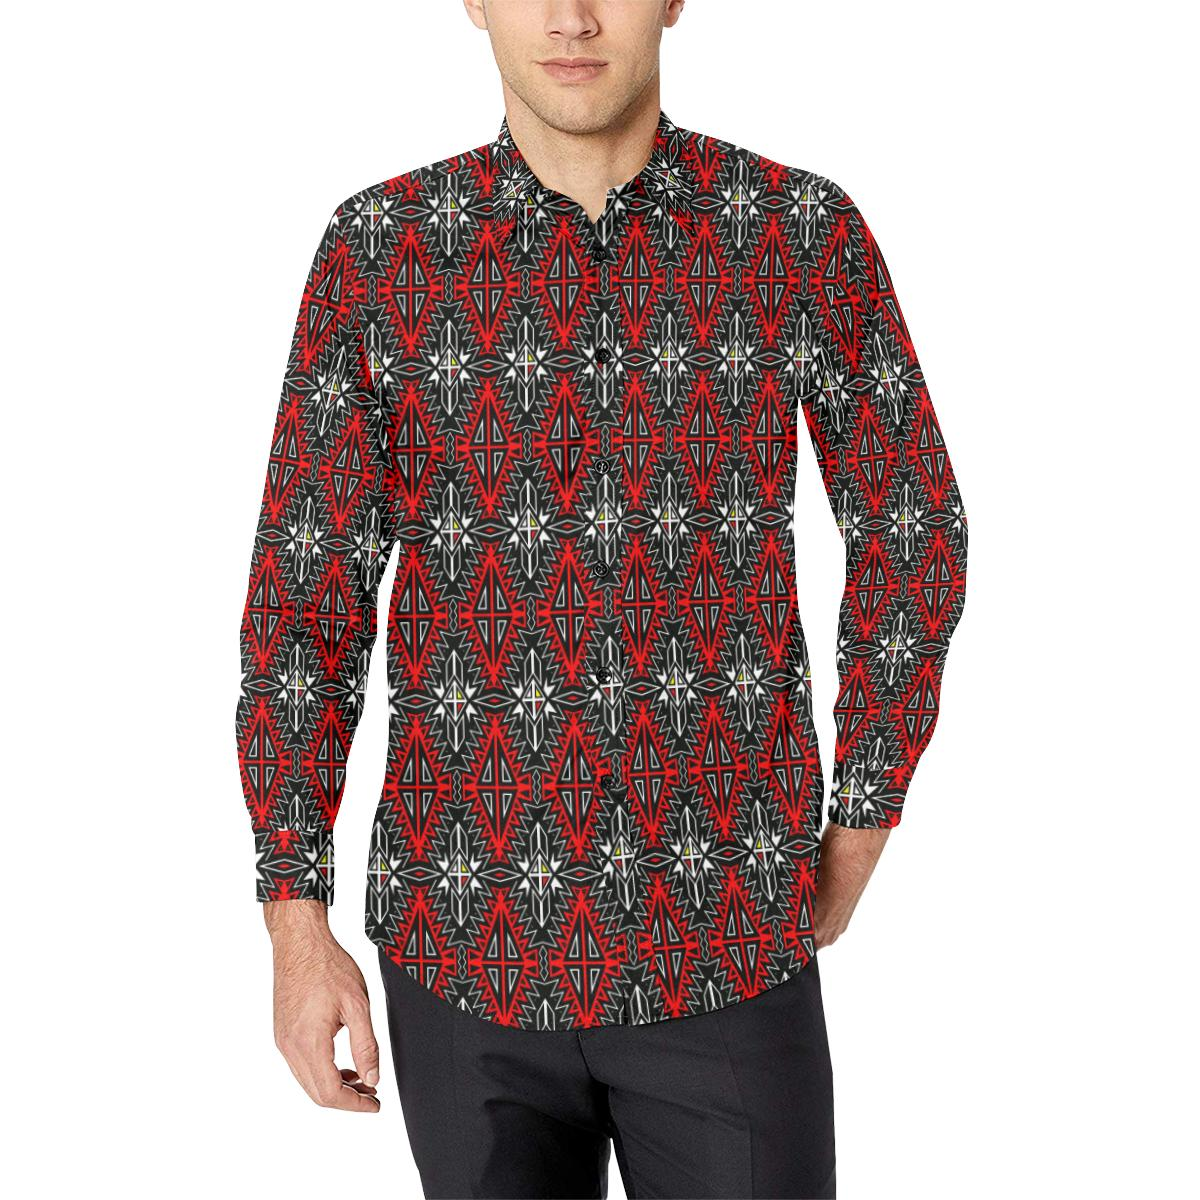 Four Directions Men's All Over Print Casual Dress Shirt (Model T61) Men's Dress Shirt (T61) e-joyer